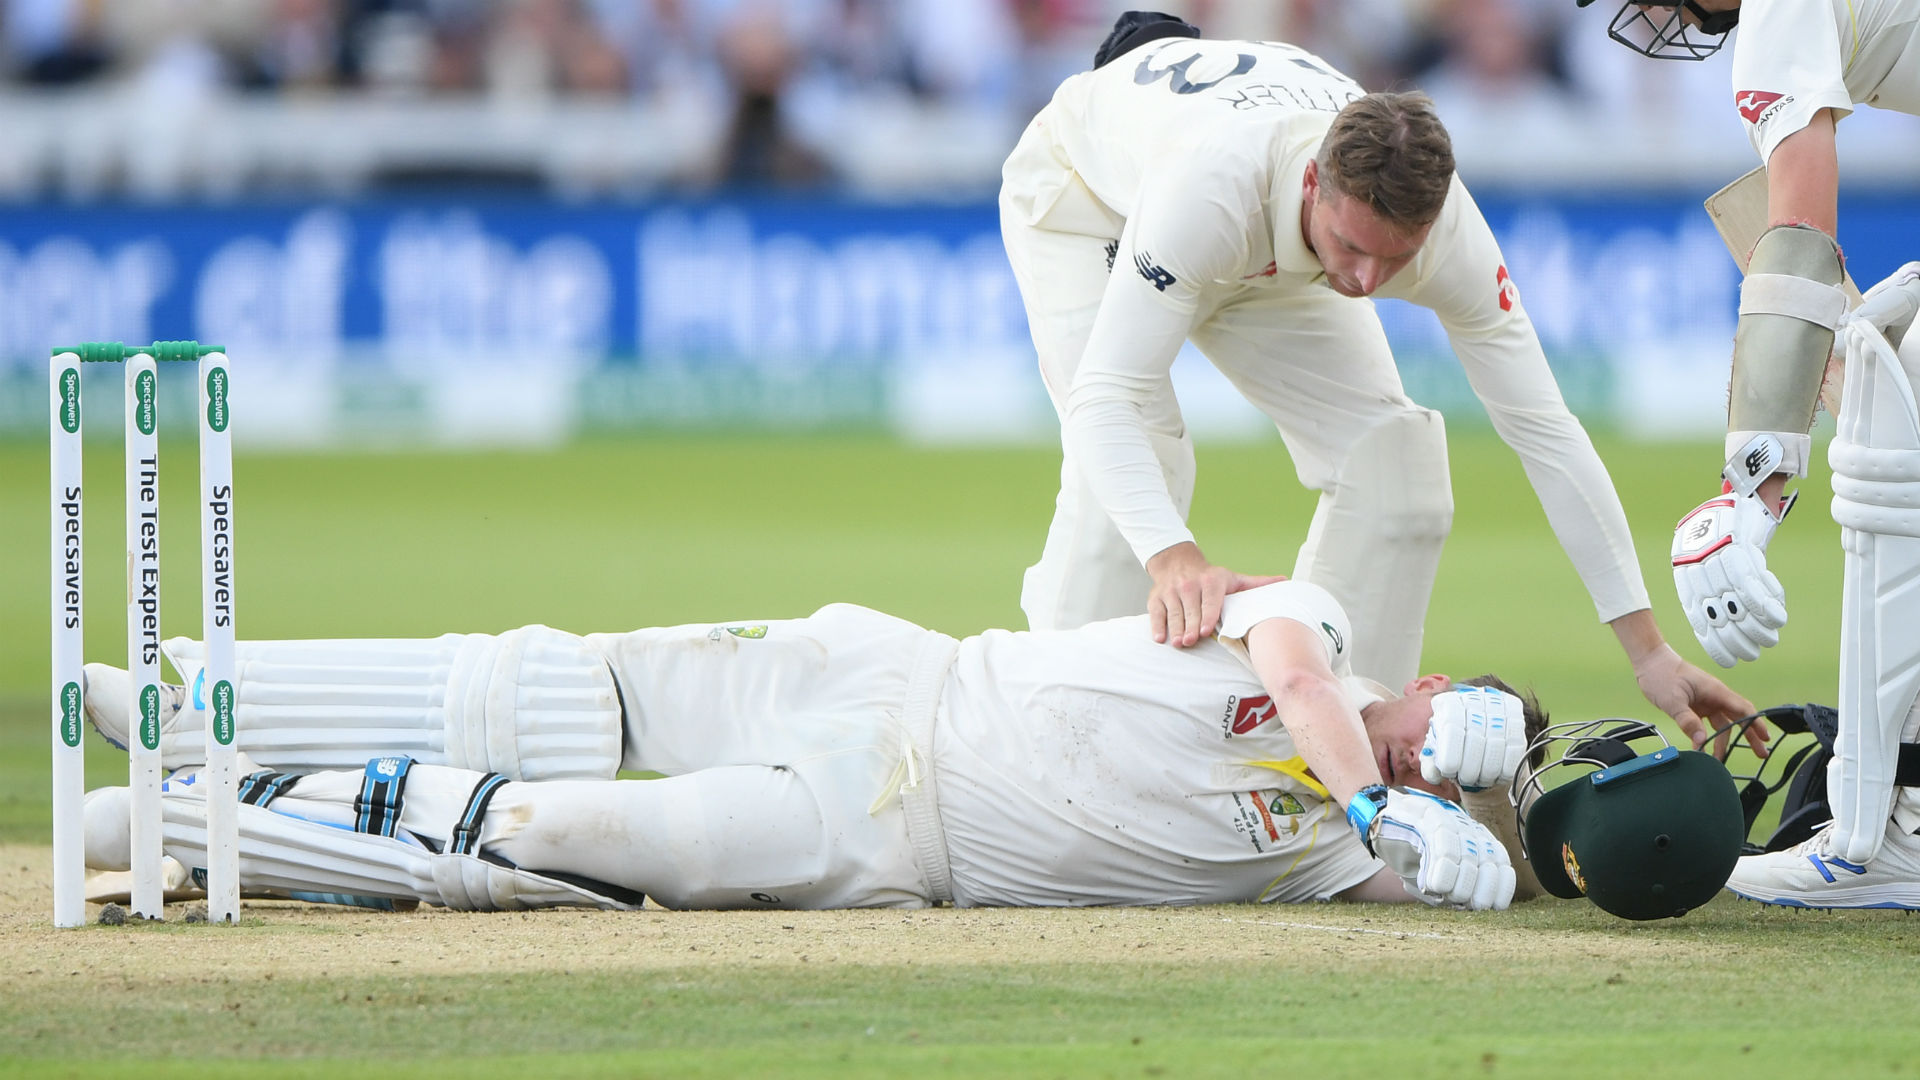 Australia batsman Steve Smith starred once again during the Ashes but Lord's held its breath when he was struck by a Jofra Archer bouncer.